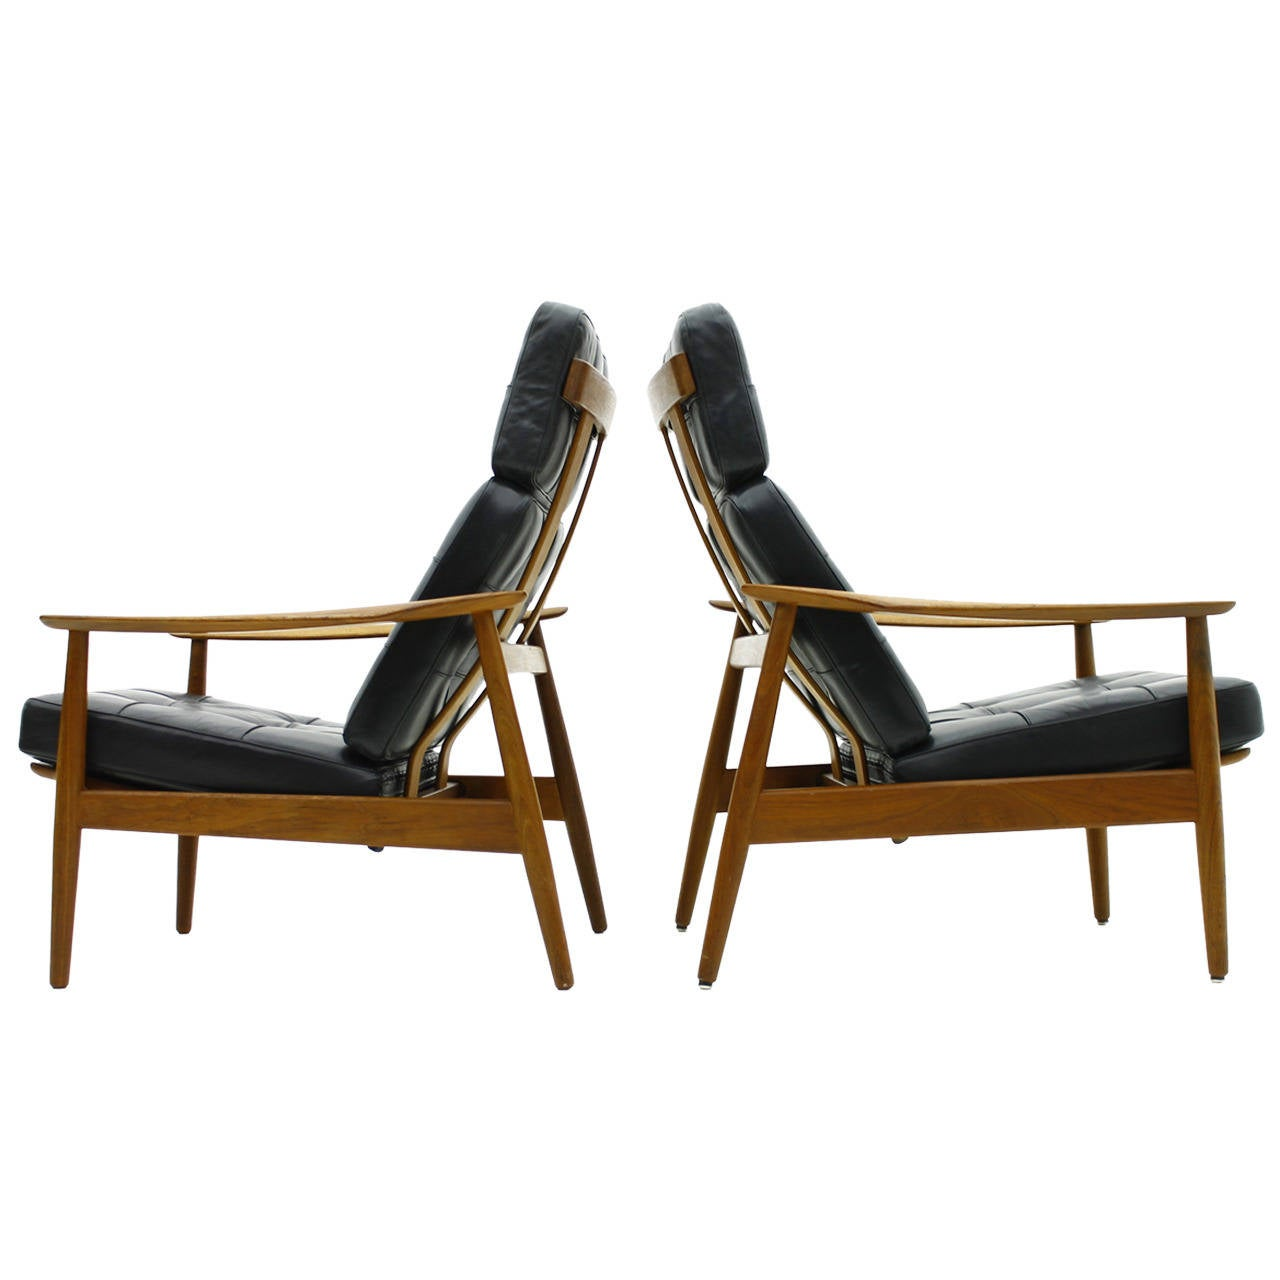 Danish Reclining Lounge Chairs Teak and Leather by Arne Vodder 1960  sc 1 st  1stDibs & Arne Vodder Easy Chairs Produced by Glostrup Møbelfabrik in ... islam-shia.org